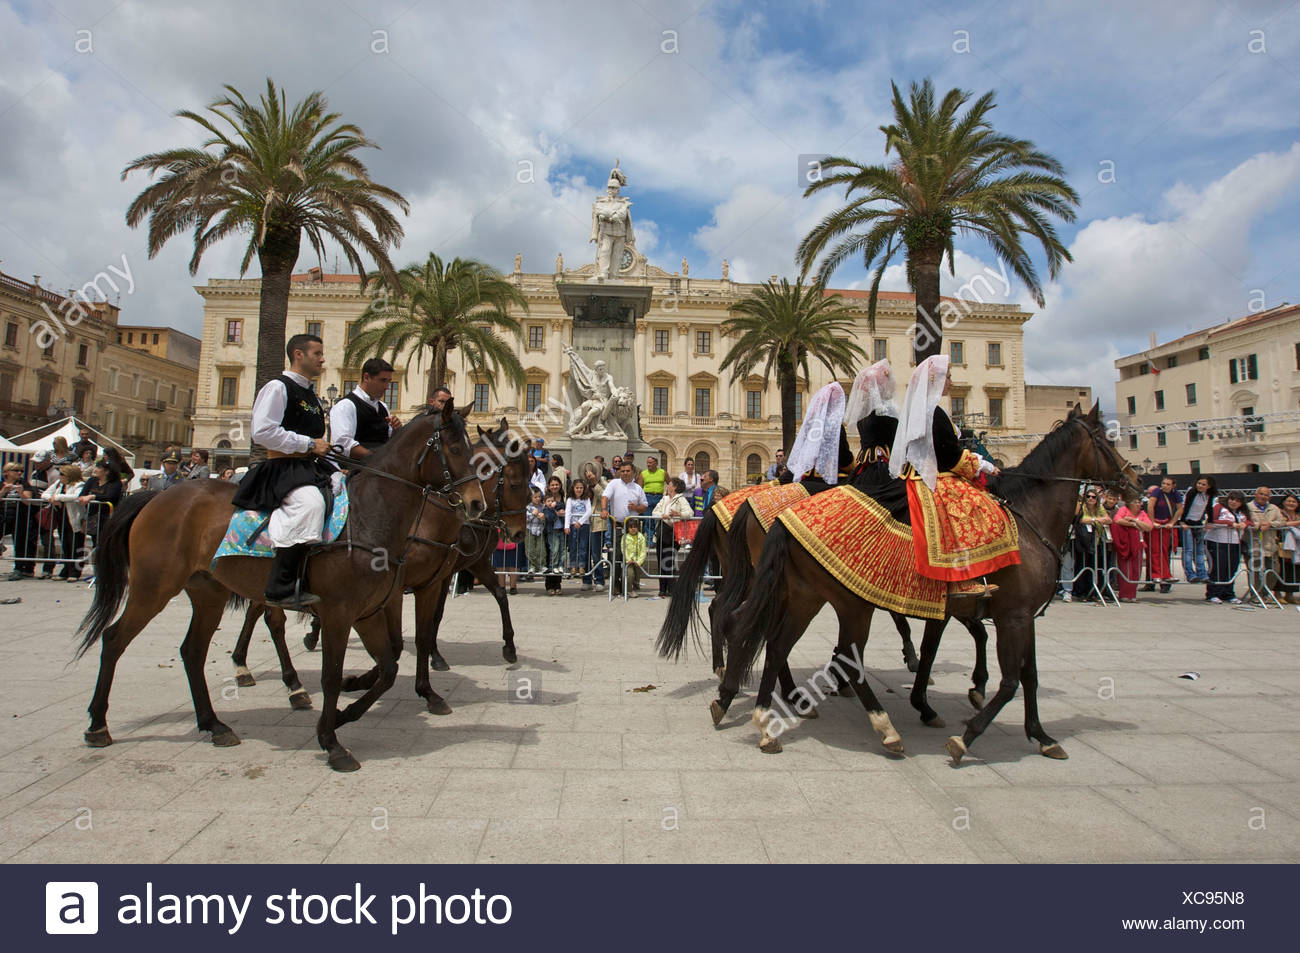 Men and women riding horses while wearing traditional costumes at the Cavalcata Sarda parade on the Piazza Italia in Sassari, S - Stock Image